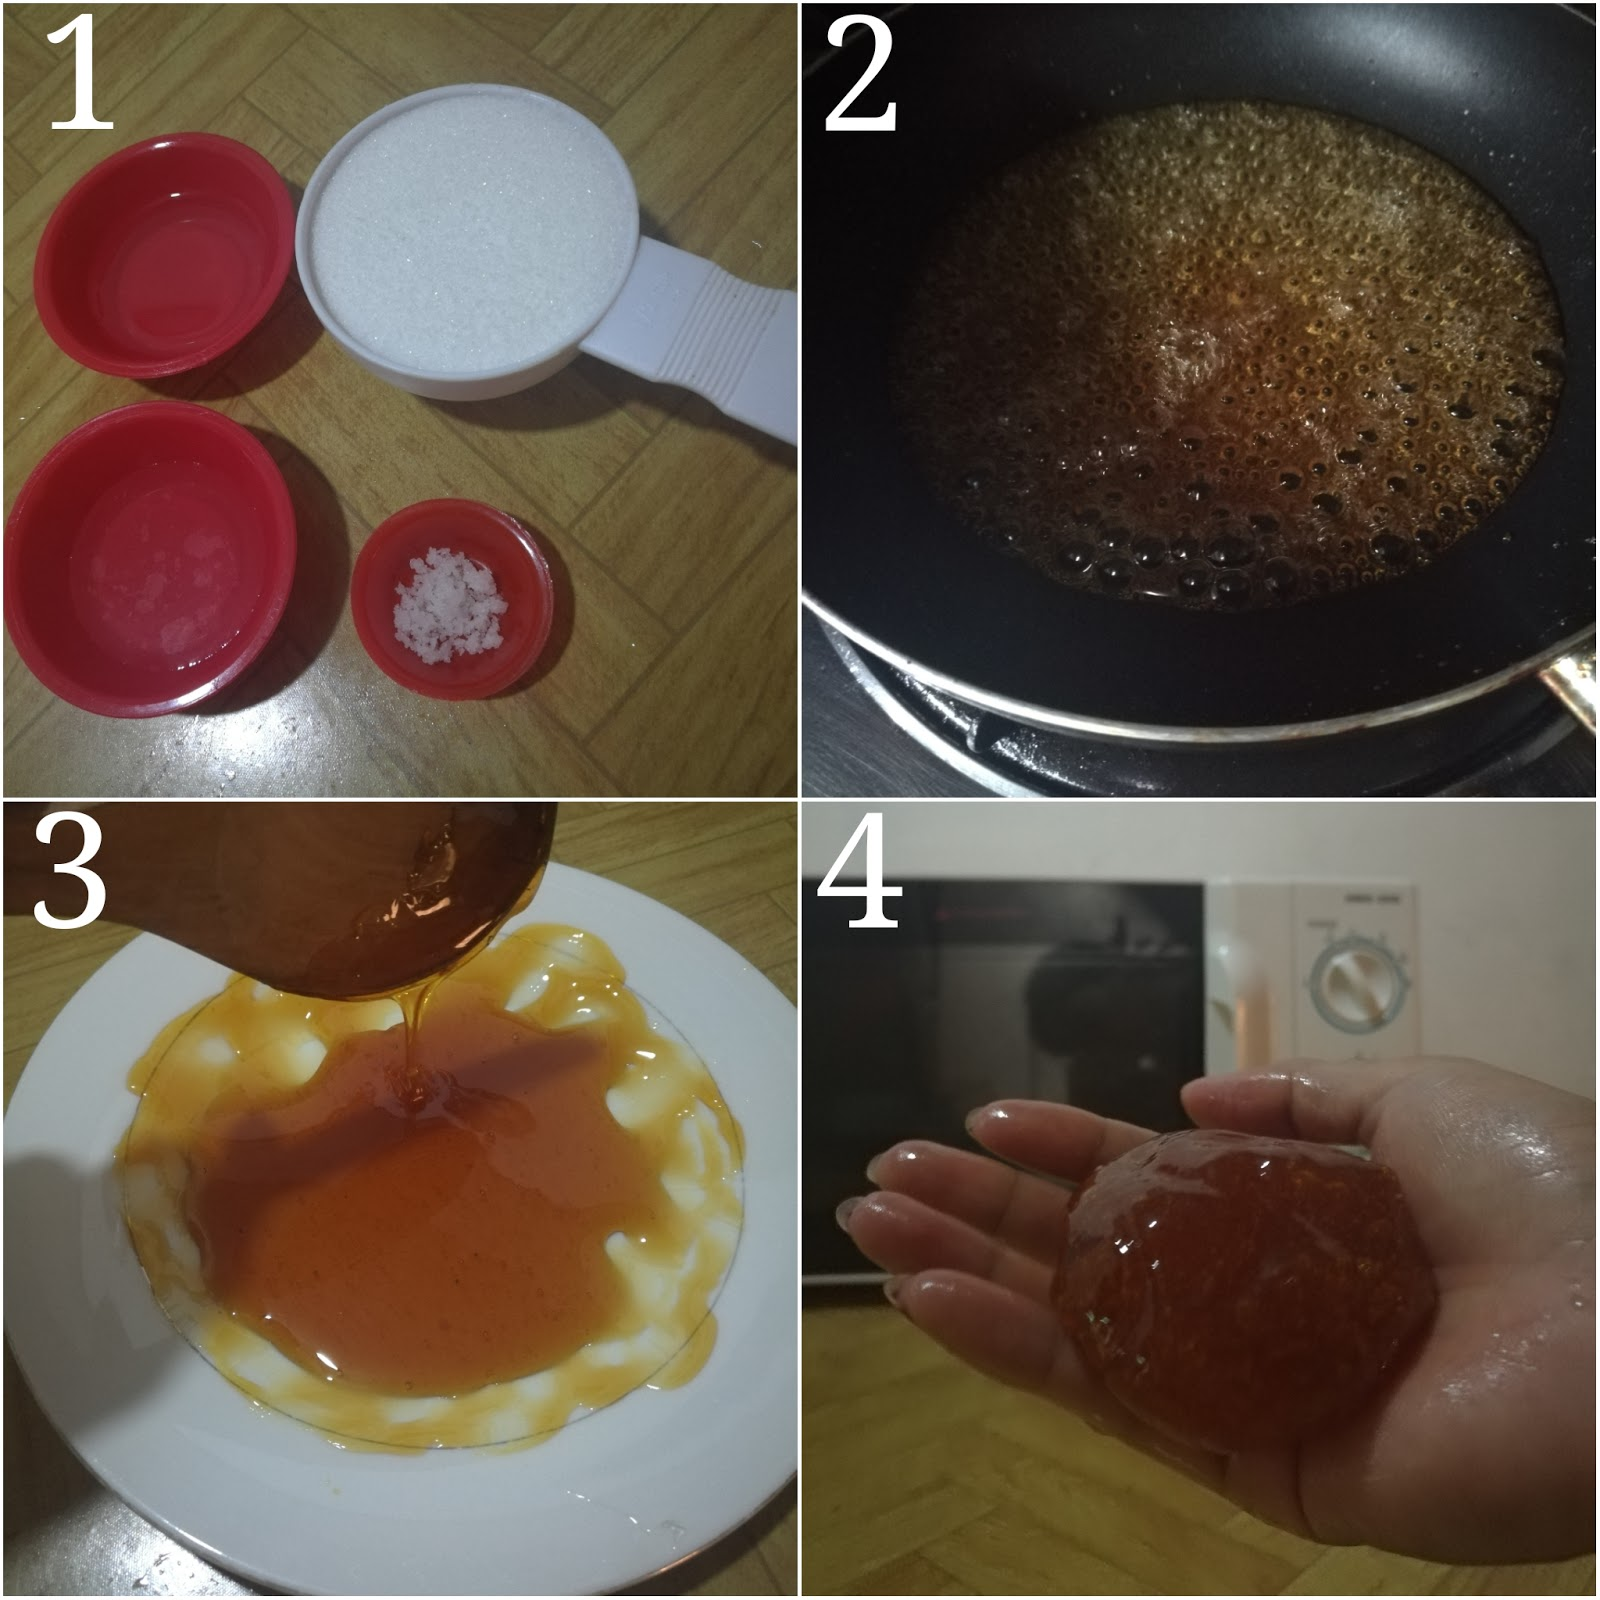 Or annoyed with the unwanted hairs? Hahaha. Give yourself some BEAUTY-ME-TIME even under the comfort of your home with this Homemade Sugar Wax Hair Remover.